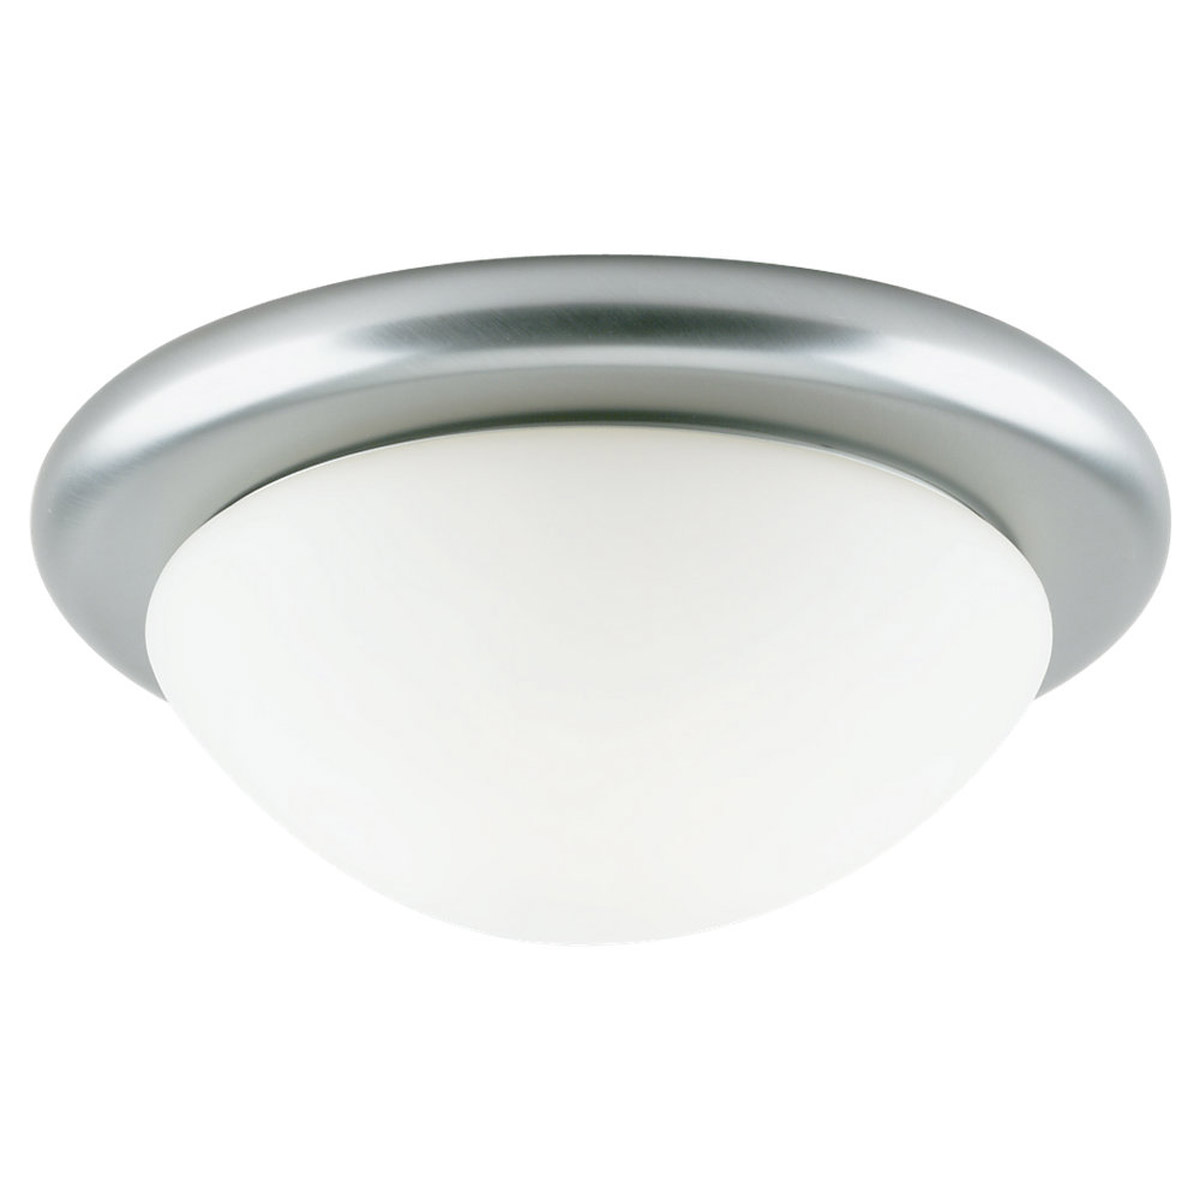 Sea Gull Lighting Twist-Lock Fitters 3 Light Flush Mount in Brushed Nickel 53074-962 photo